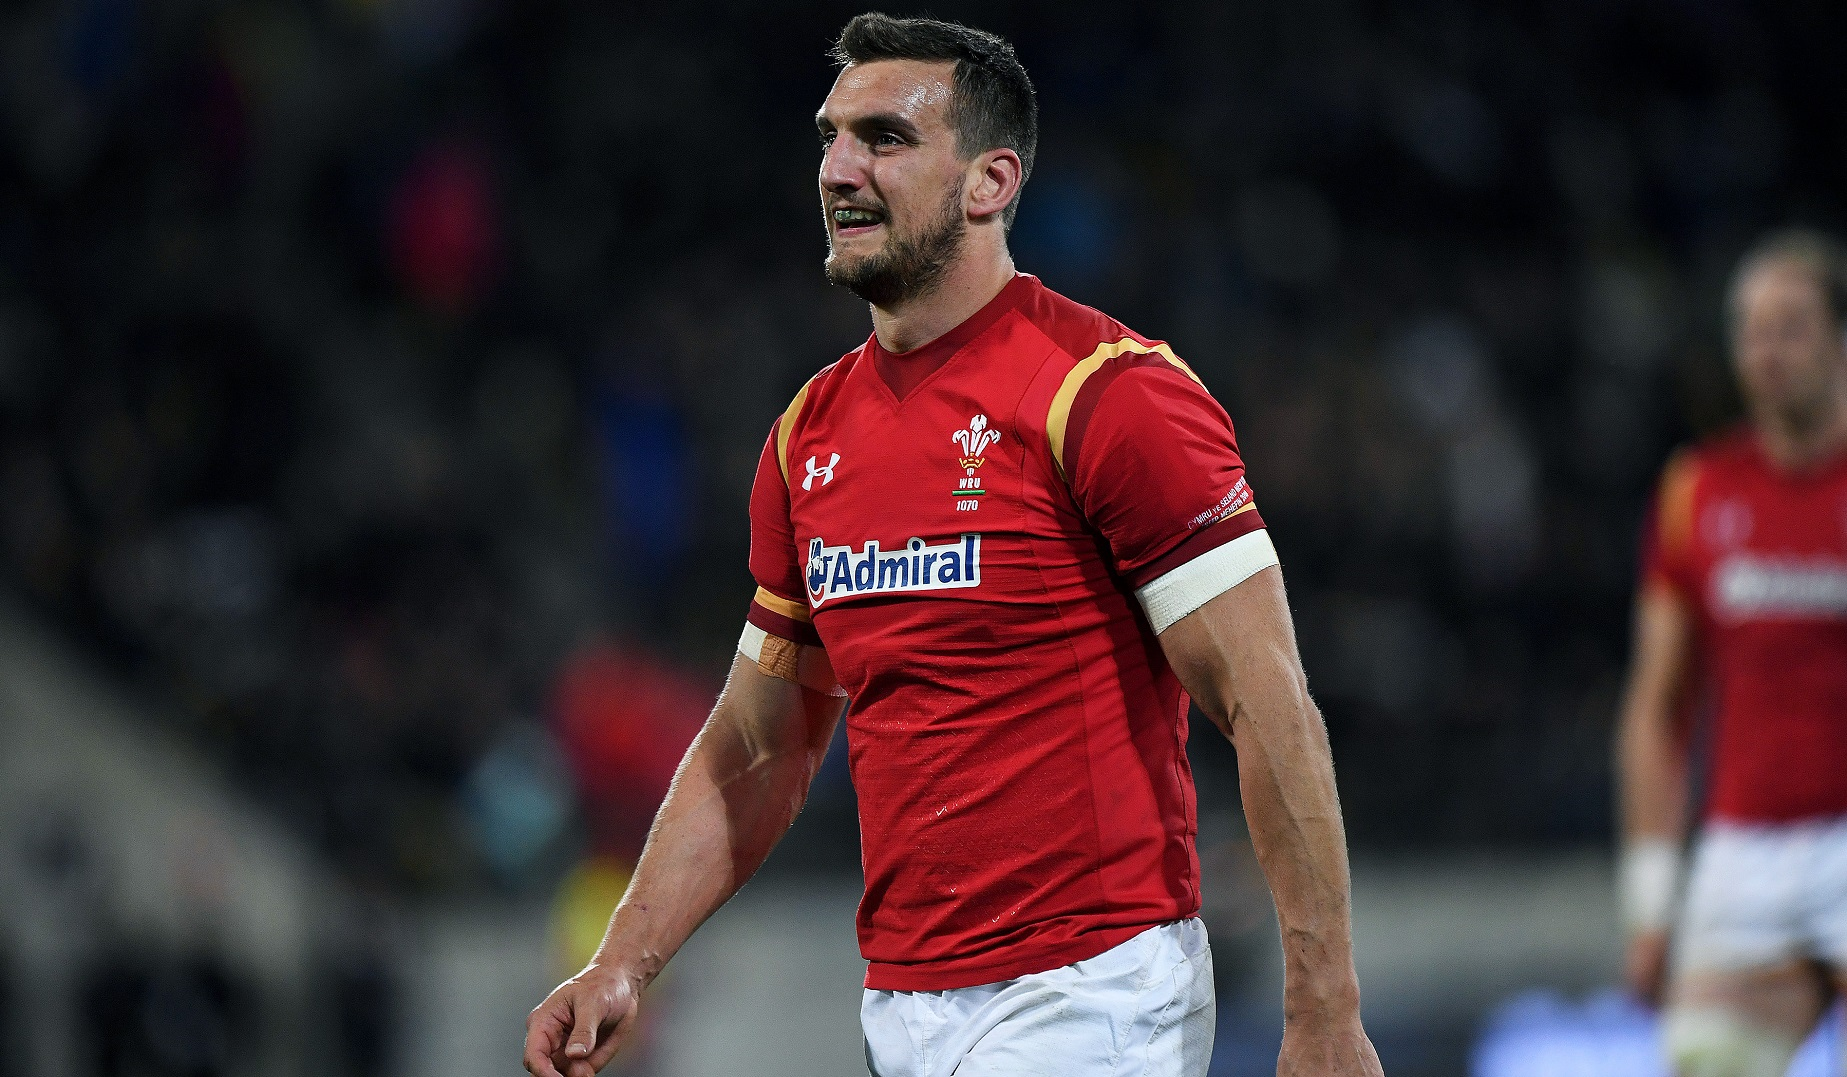 LionsWatch: Mixed fortunes for Wales after Davies' drop-goal delight